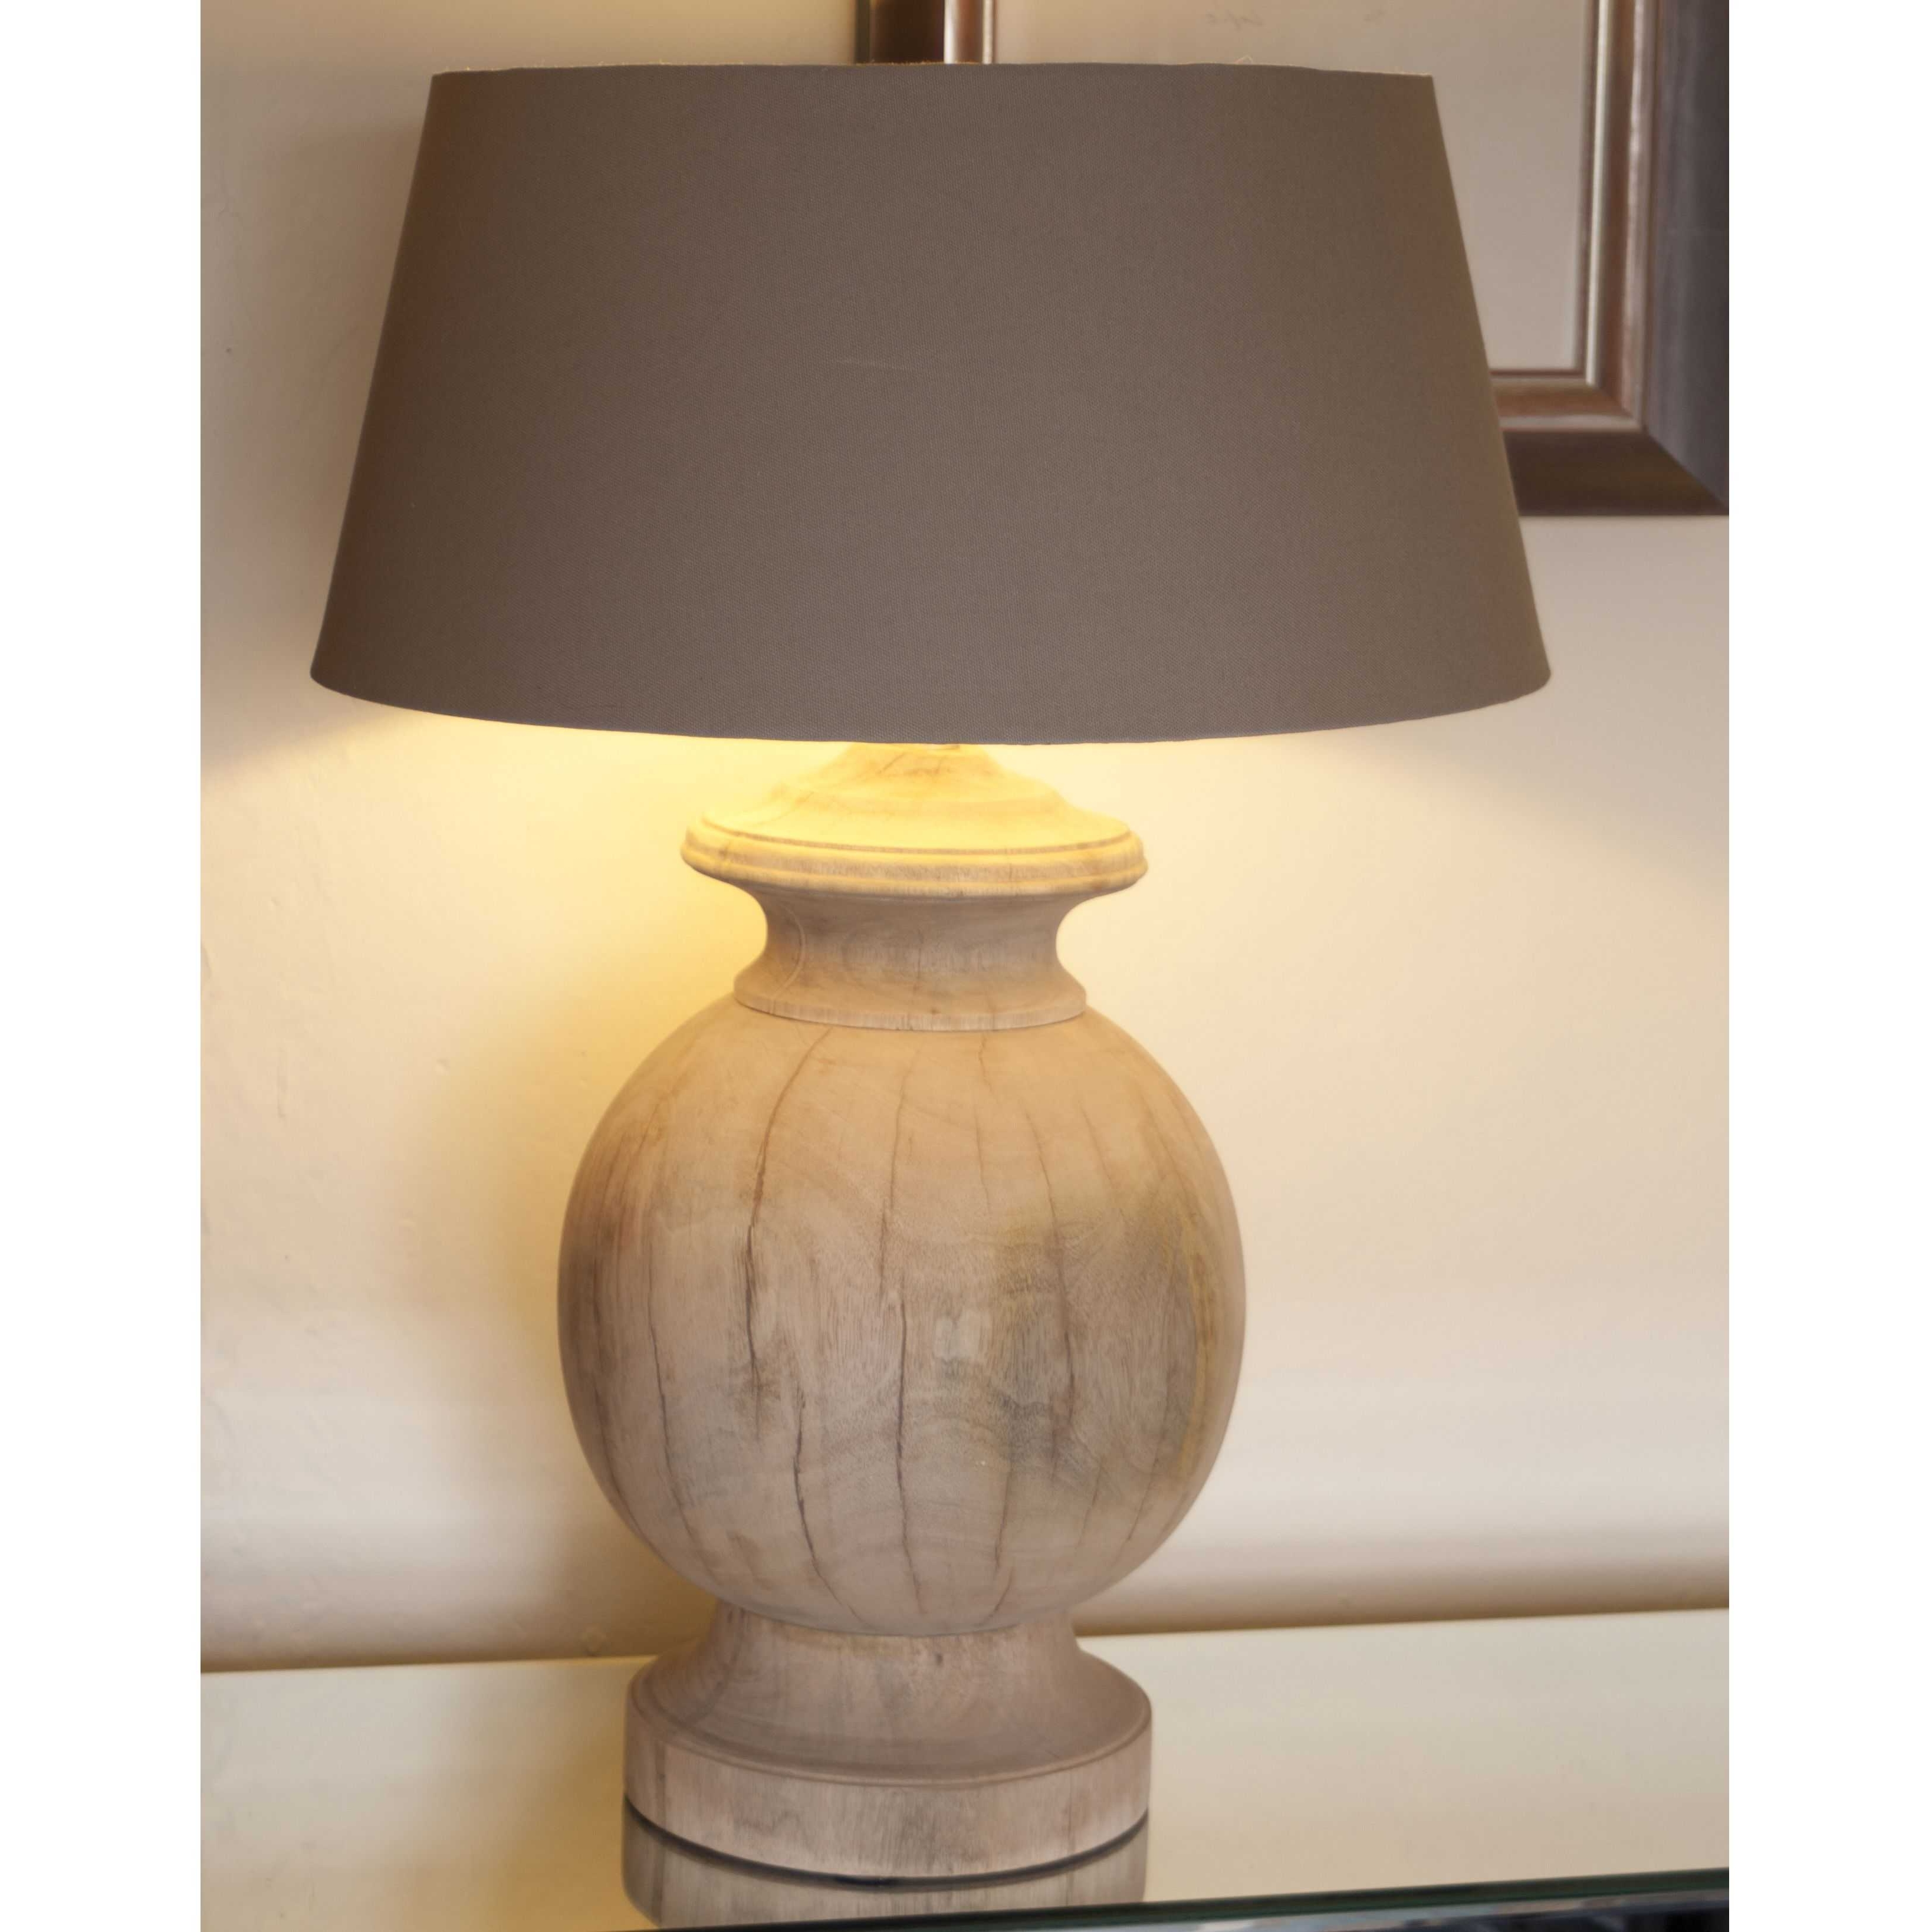 2018 Table Lamps For The Living Room Within Cheap Table Lamps For Bedroom Images With Stunning Living Room  (View 1 of 20)